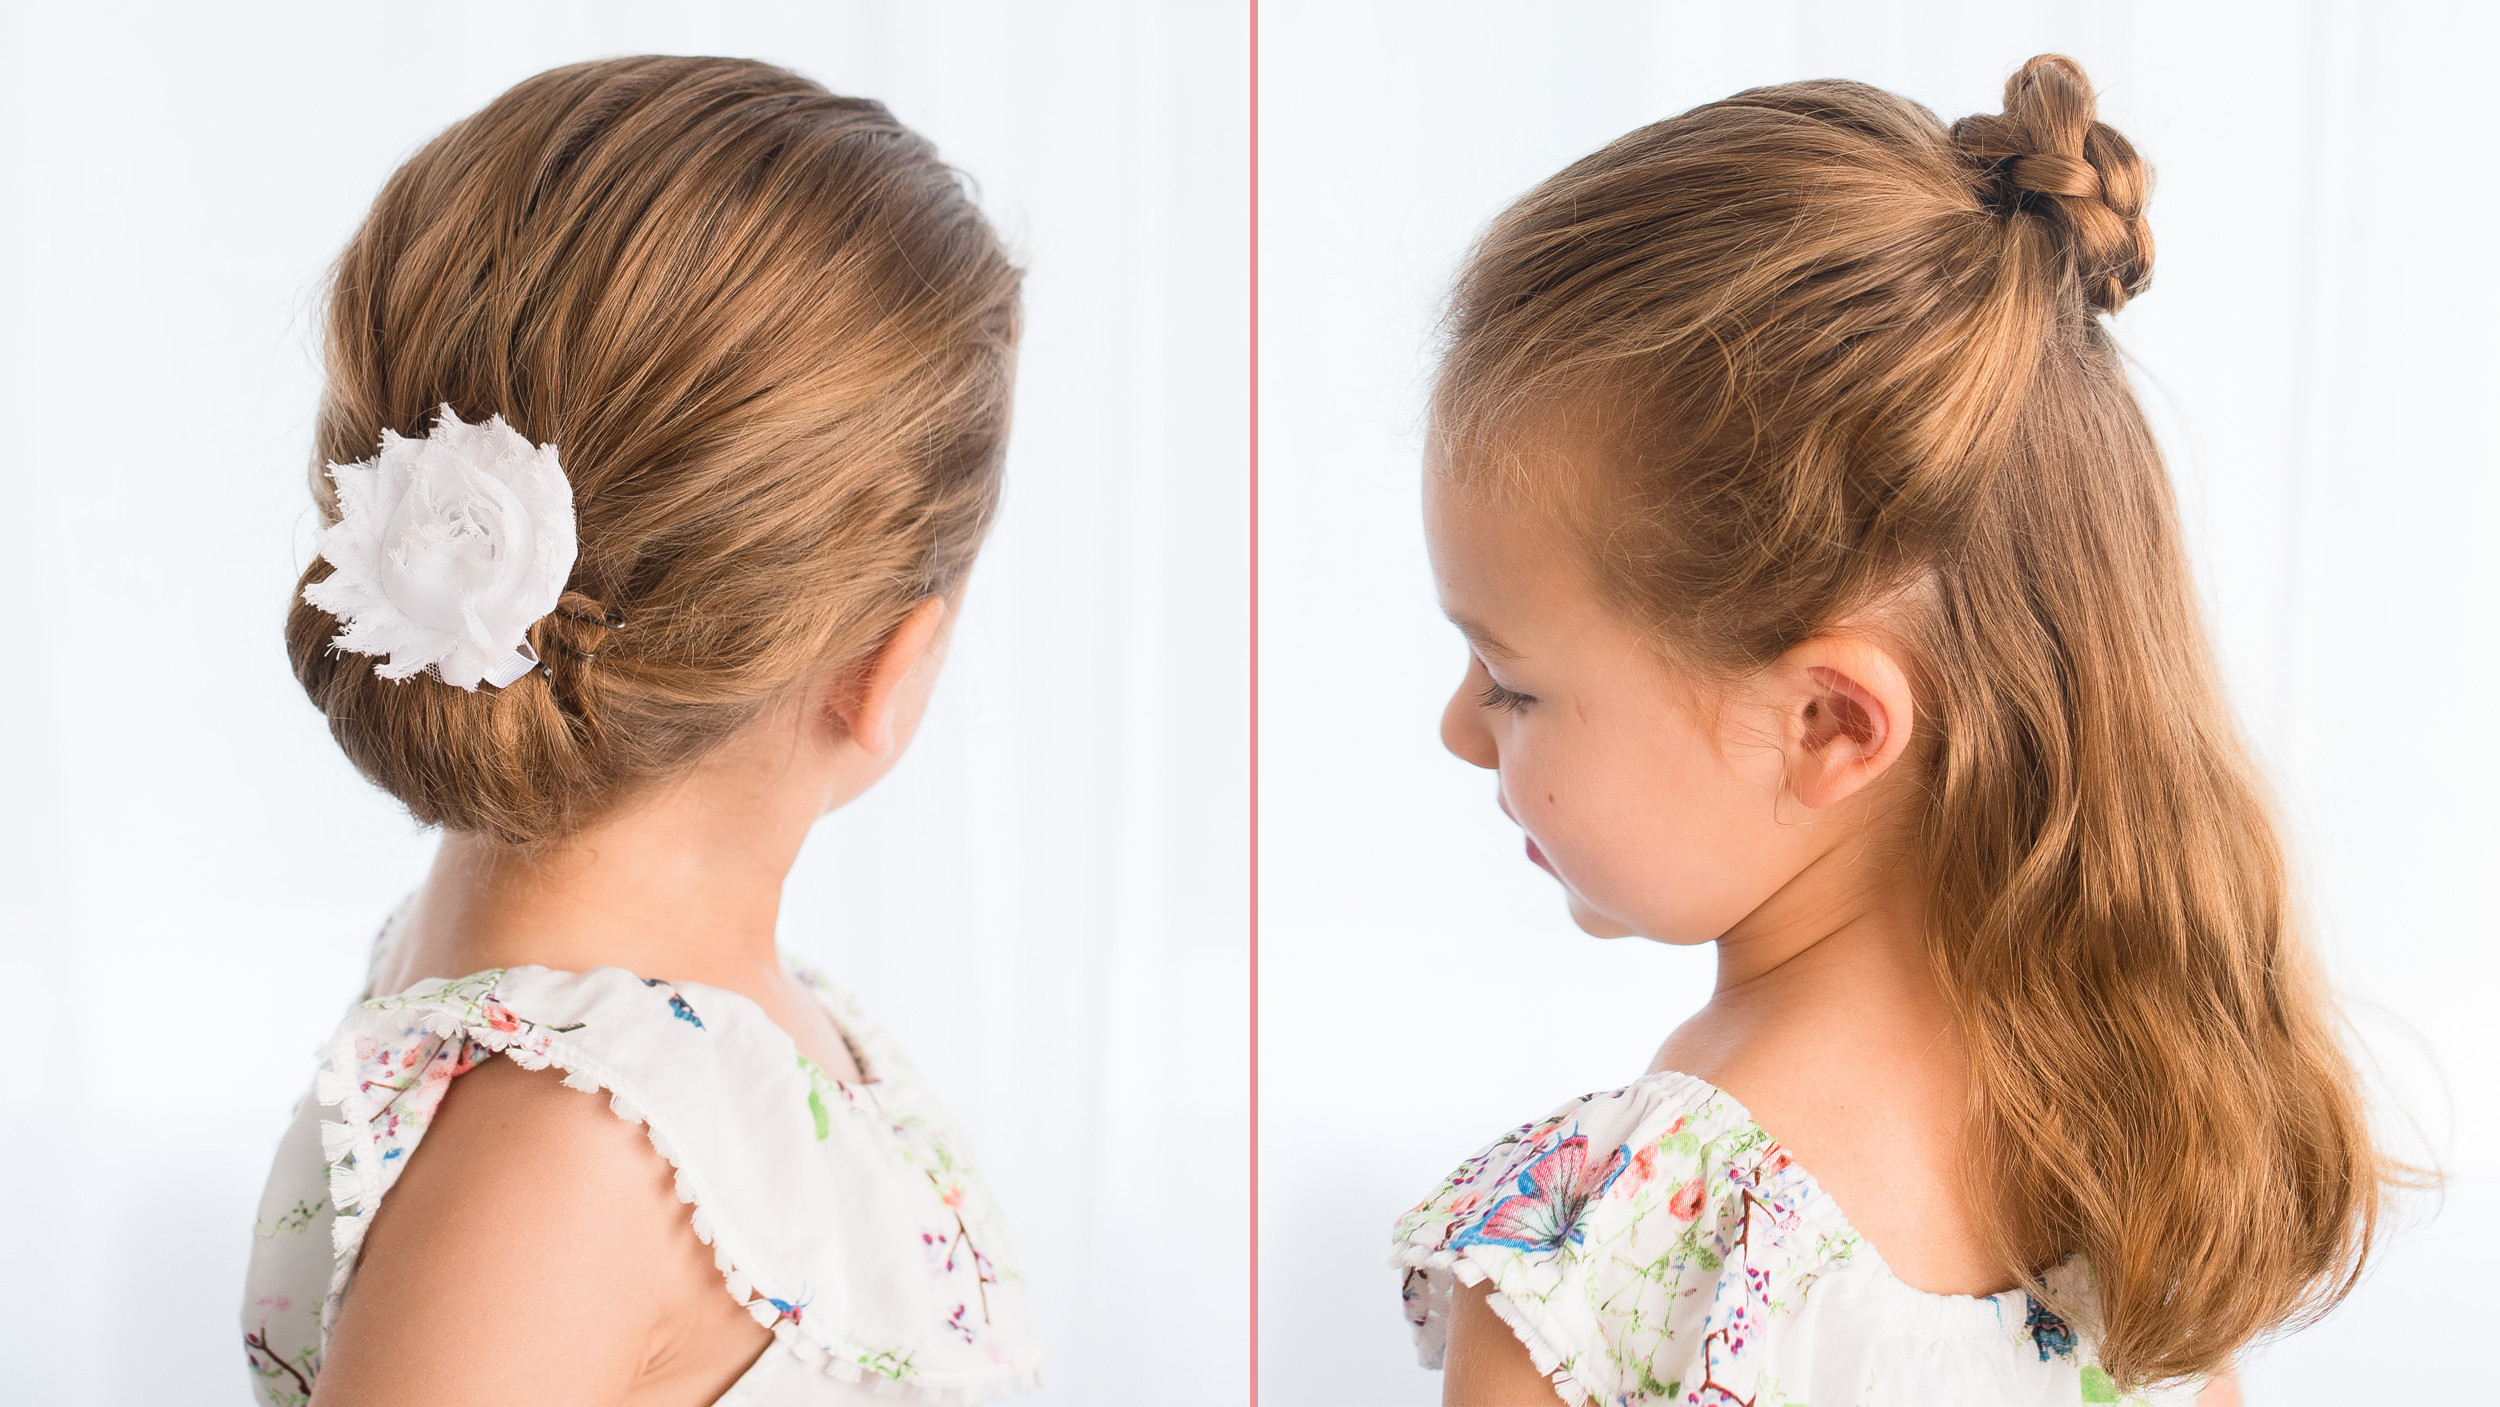 Best ideas about 10 Year Old Hairstyles For School . Save or Pin Easy hairstyles for girls that you can create in minutes Now.